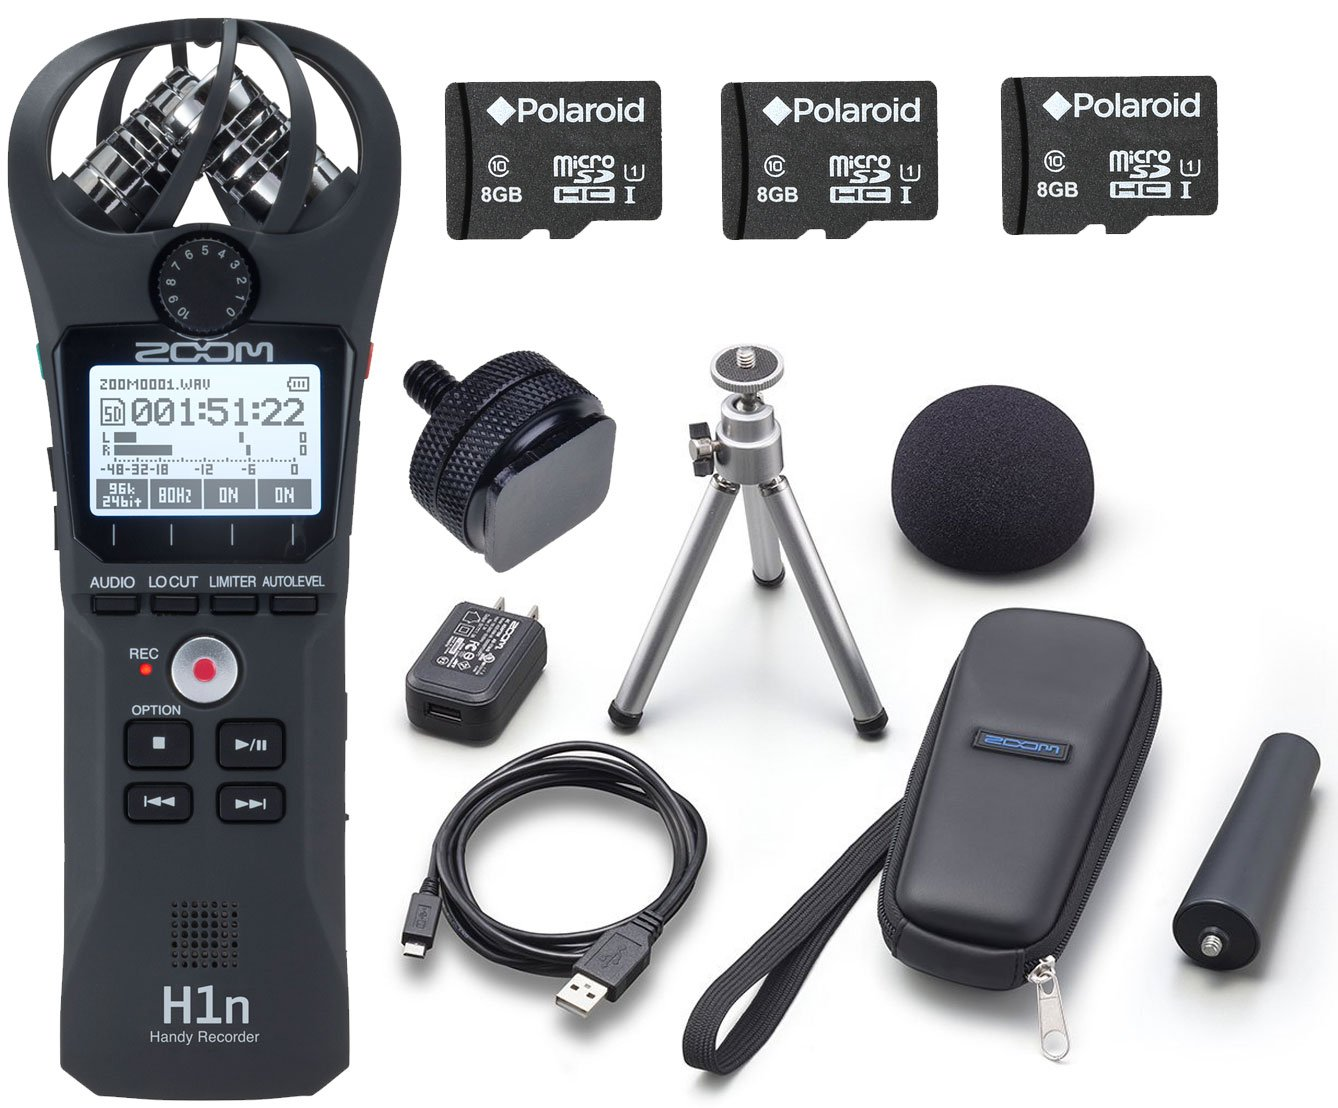 Zoom H1n Handy Pocket-Sized Digital Recorder w/Accessory Pack and 3 Pack Polaroid 8GB Micro SDHC Cards